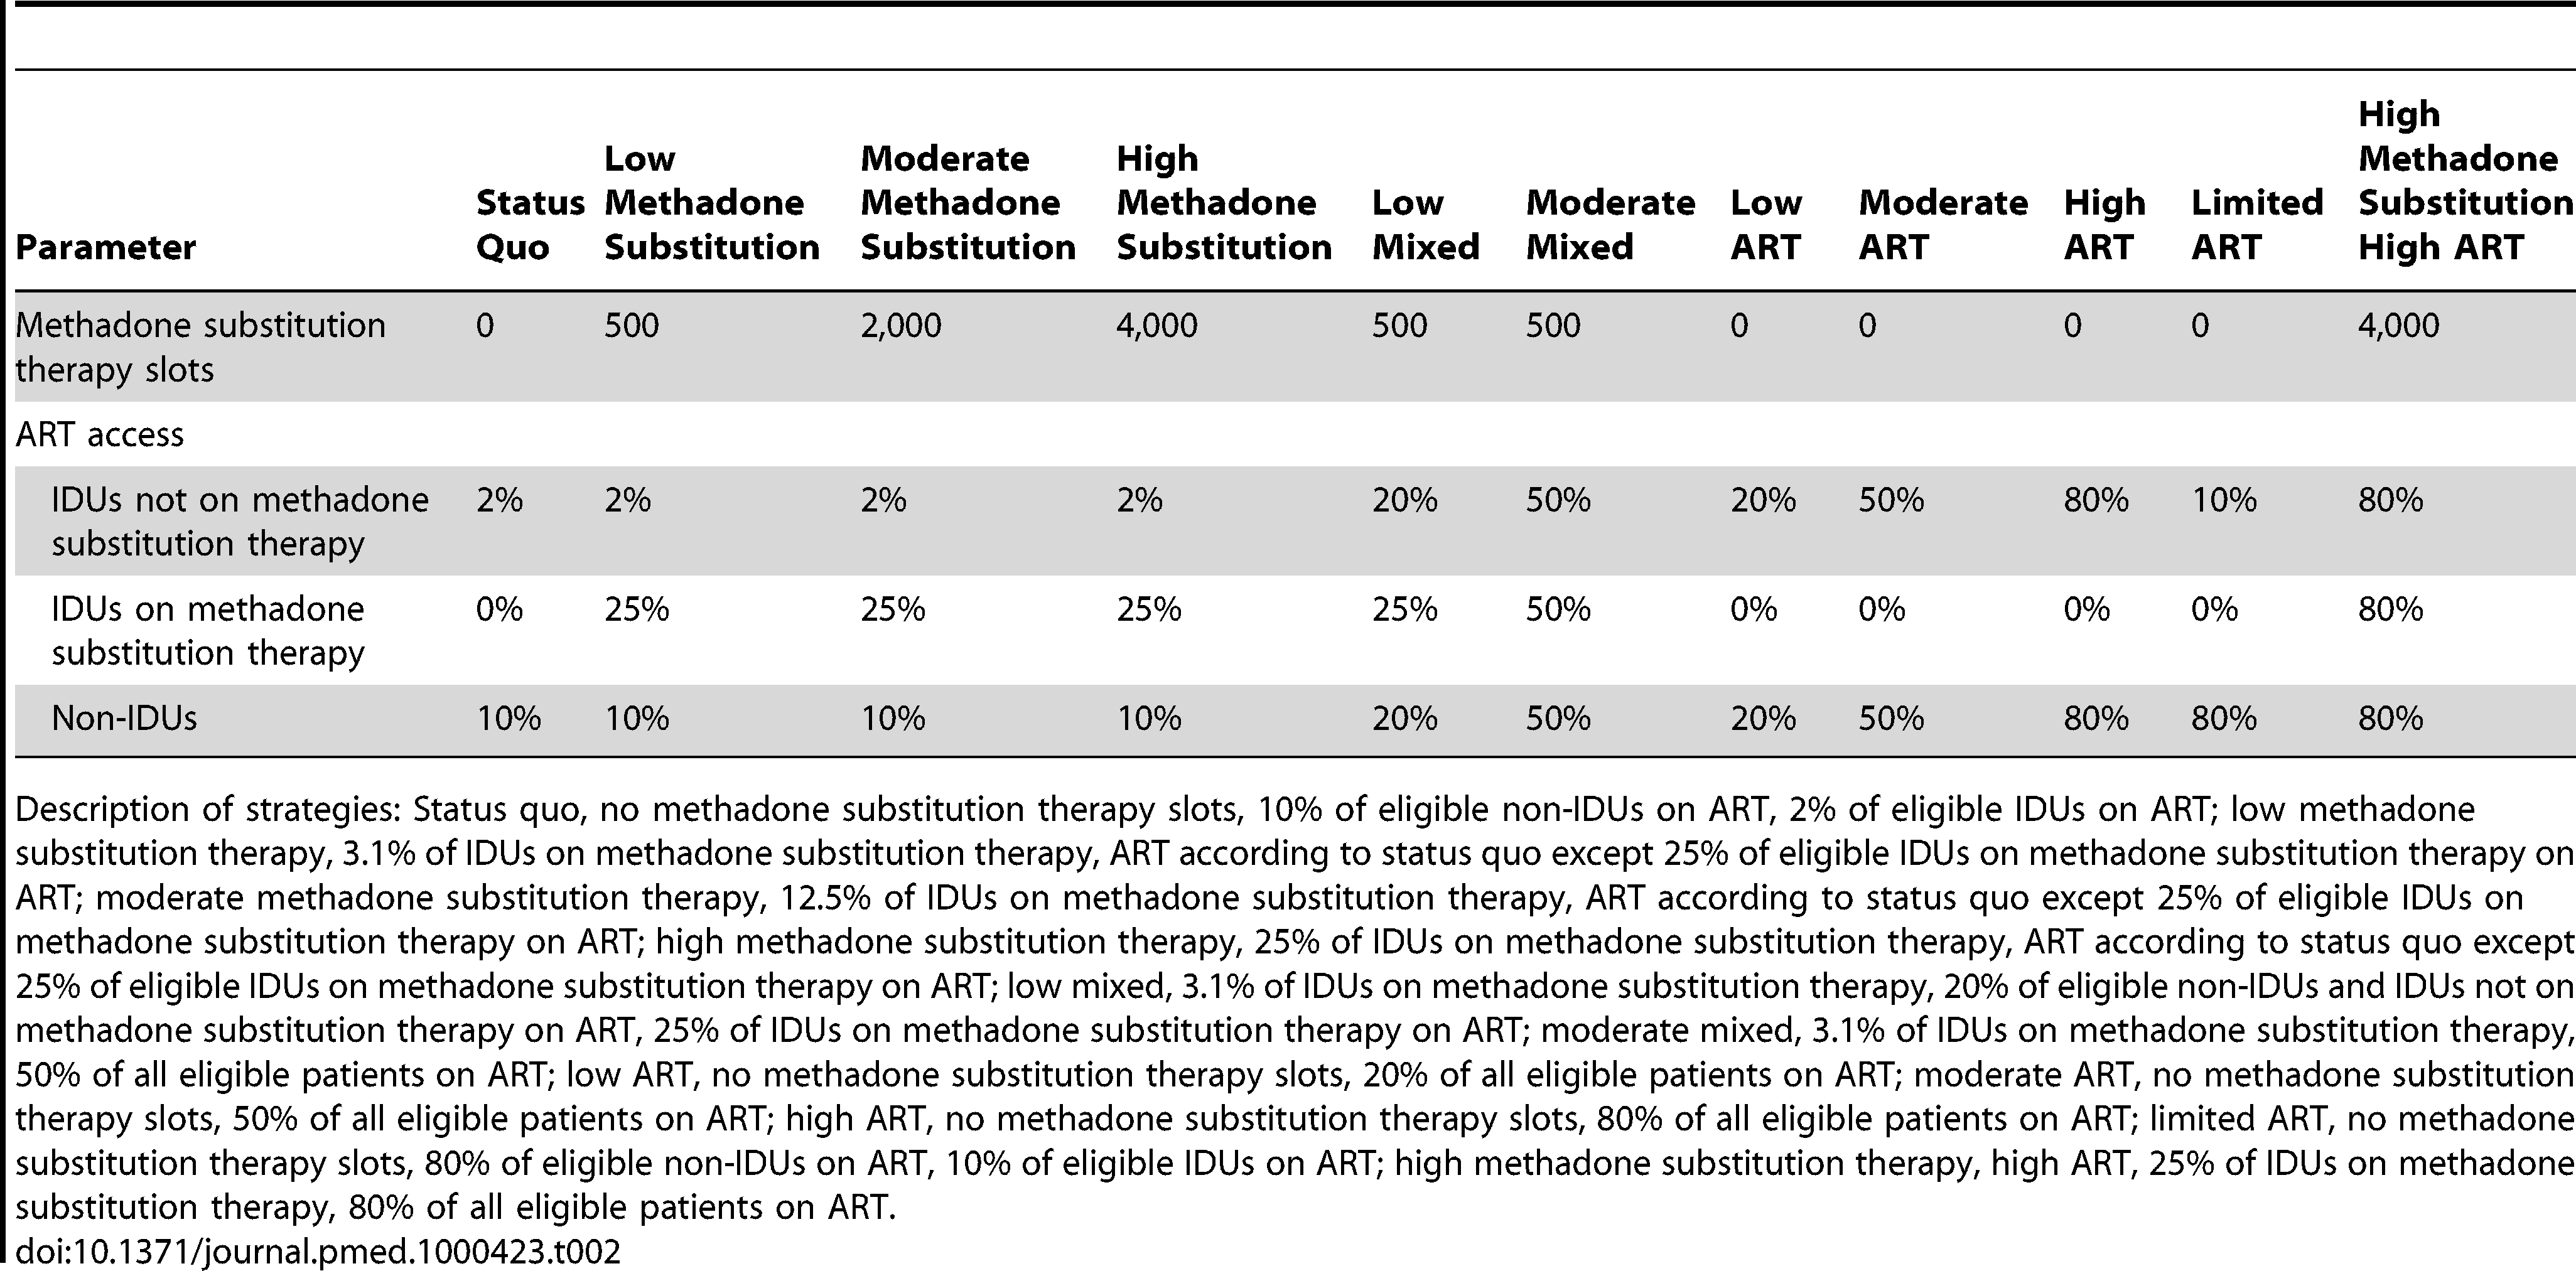 Key parameters (methadone substitution therapy slots and ART access by population) for strategies considered.